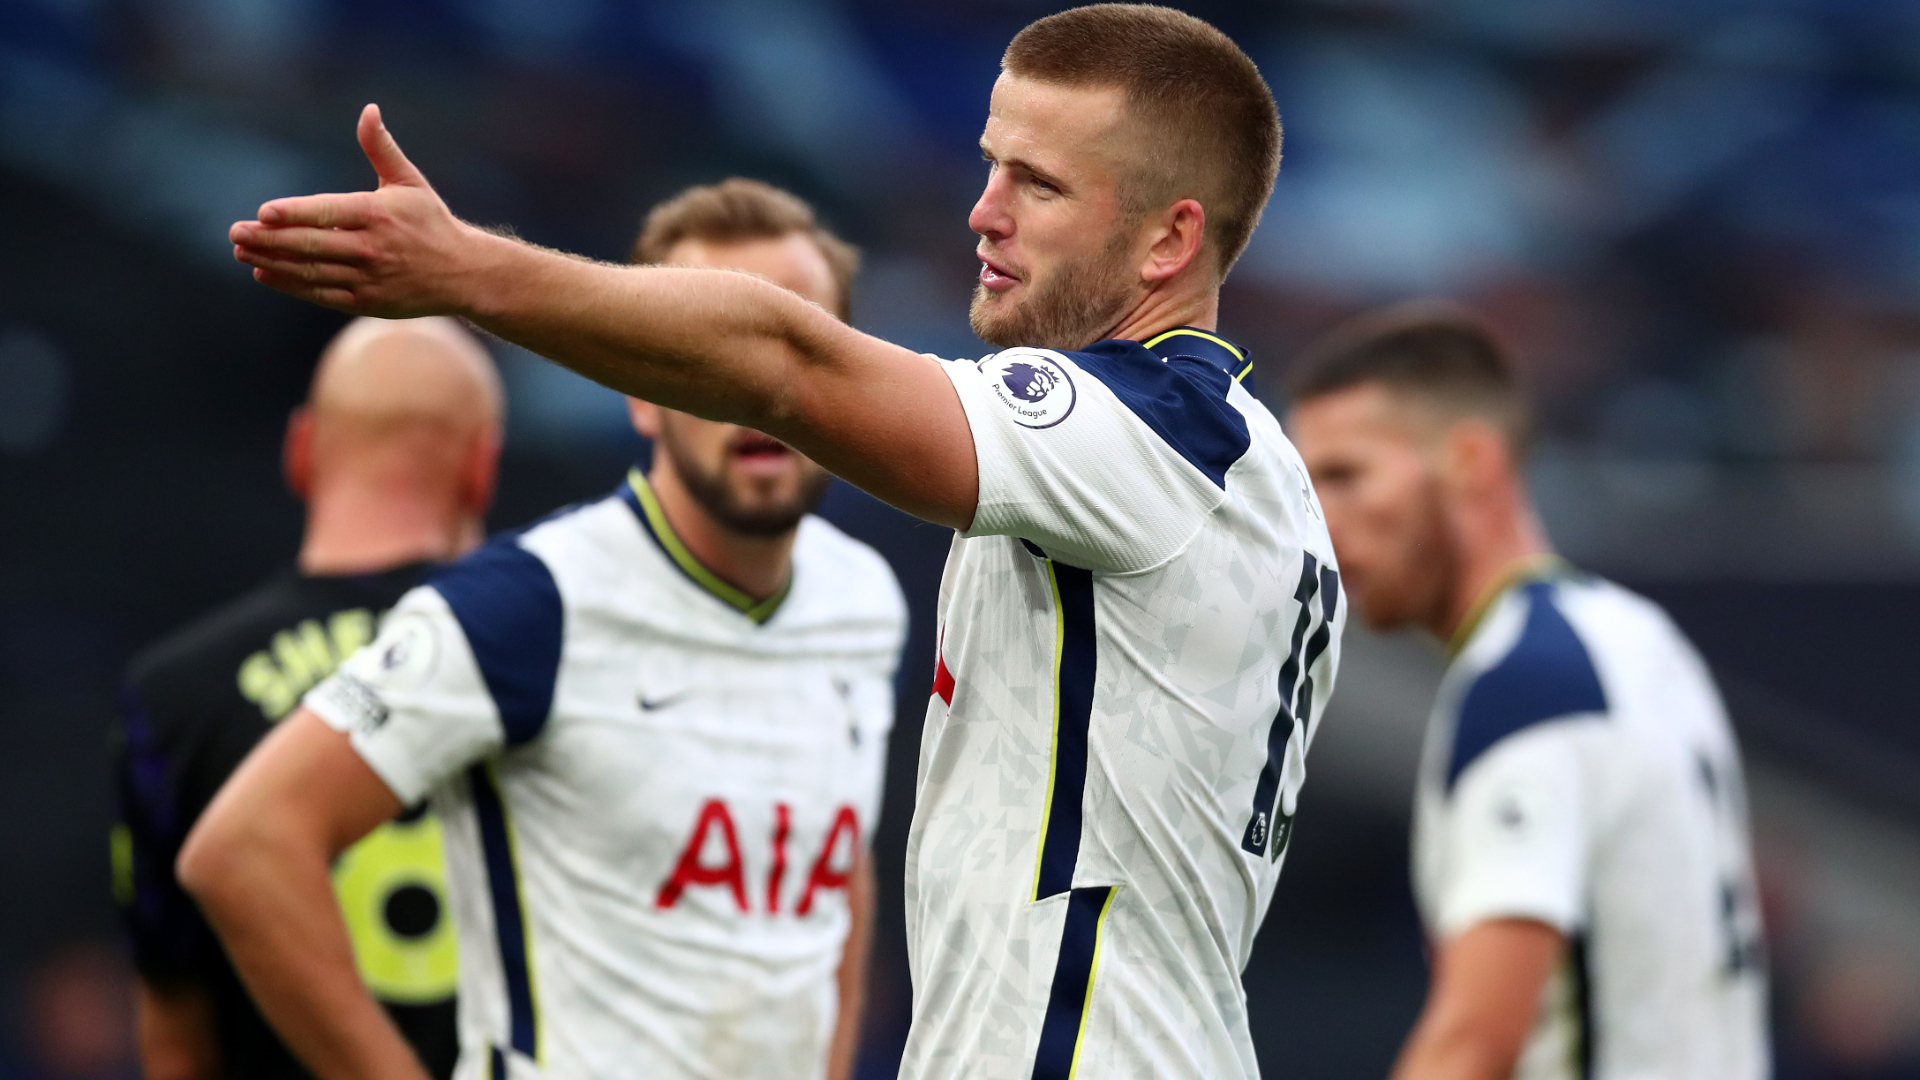 Carabao Cup | Eric Dier corre in bagno, Mou lo riporta in campo | VIDEO